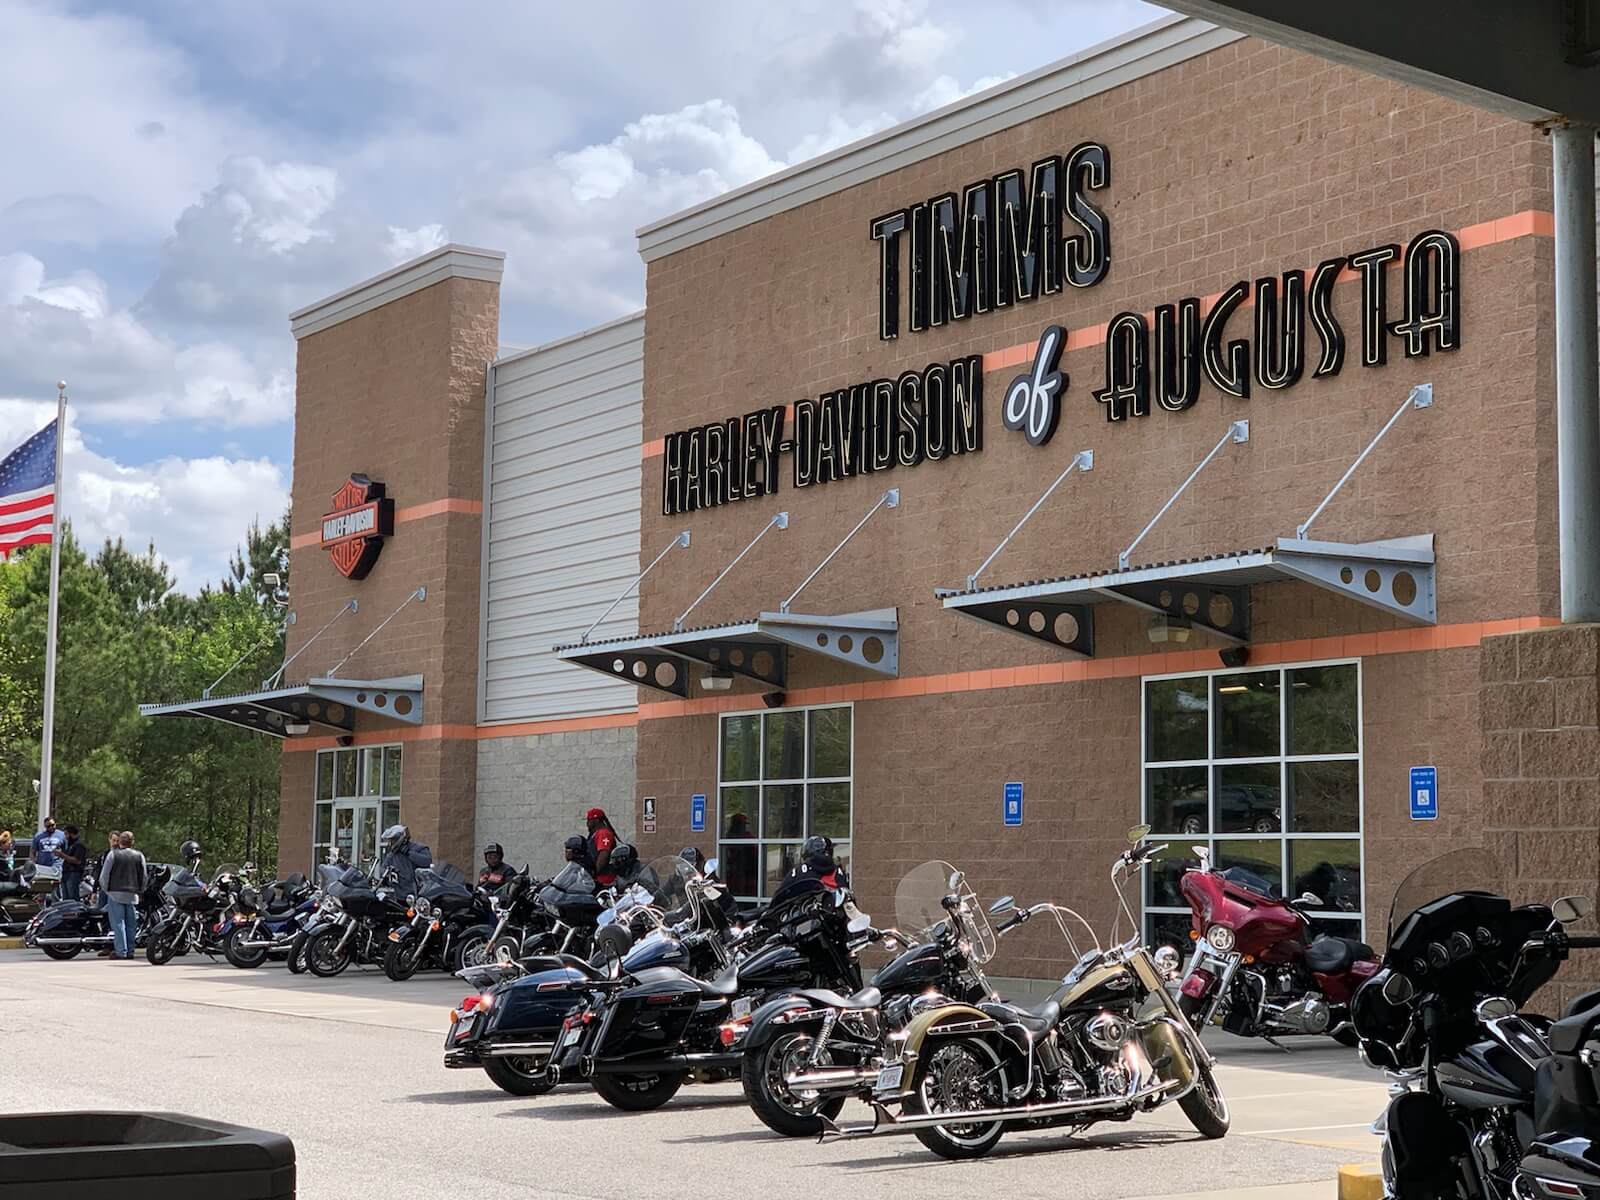 Harley Davidson Dealers Near Me >> Timms Harley Davidson Of Augusta I Your Augusta Harley